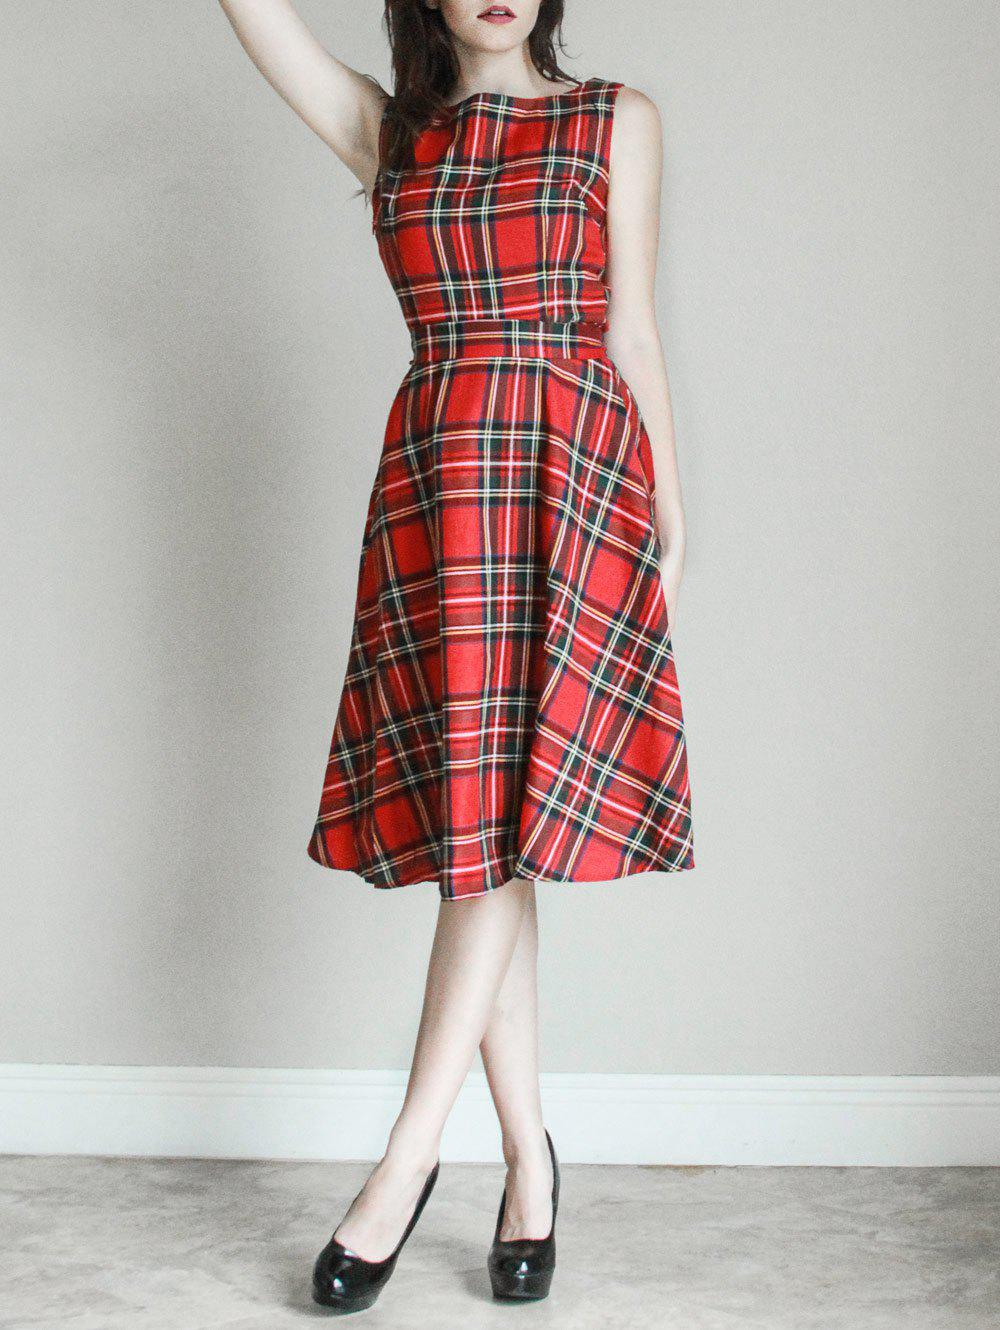 Vintage Women's Jewel Neck Sleeveless Plaid Belted A-Line Dress - RED M